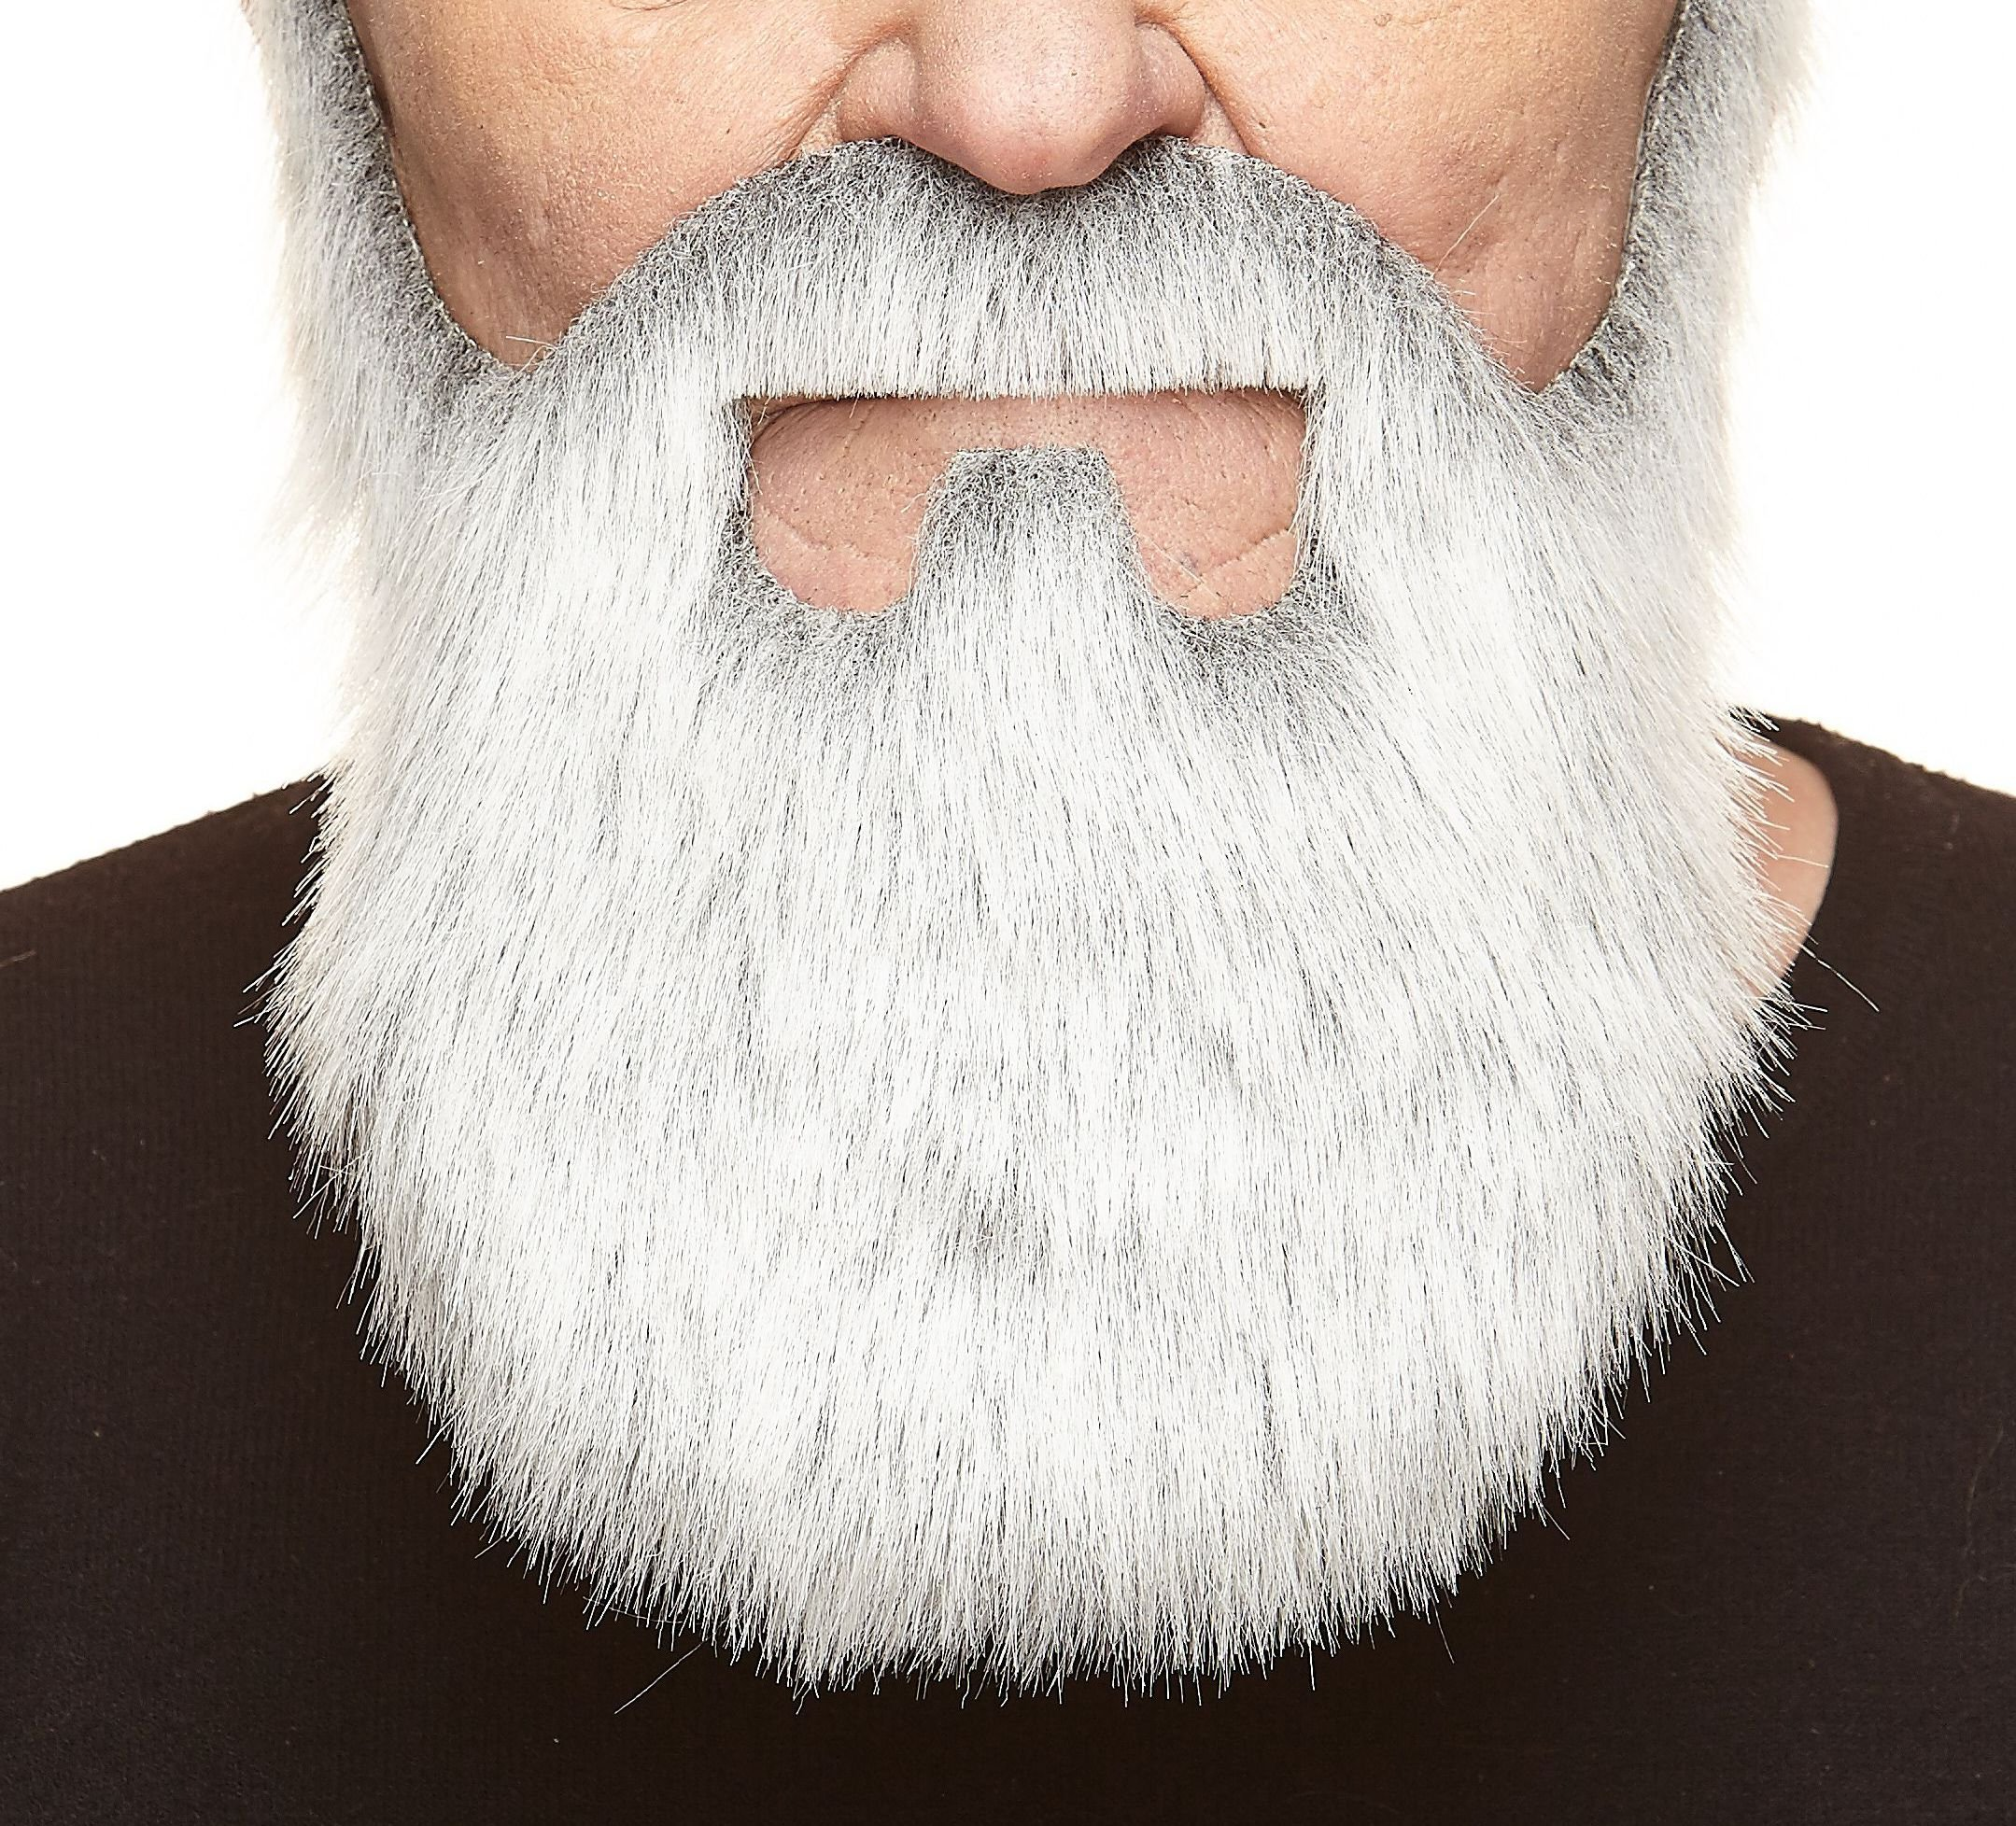 Mustaches Self Adhesive, Novelty, Fake Old Merchant Beard and, Gray with White Color